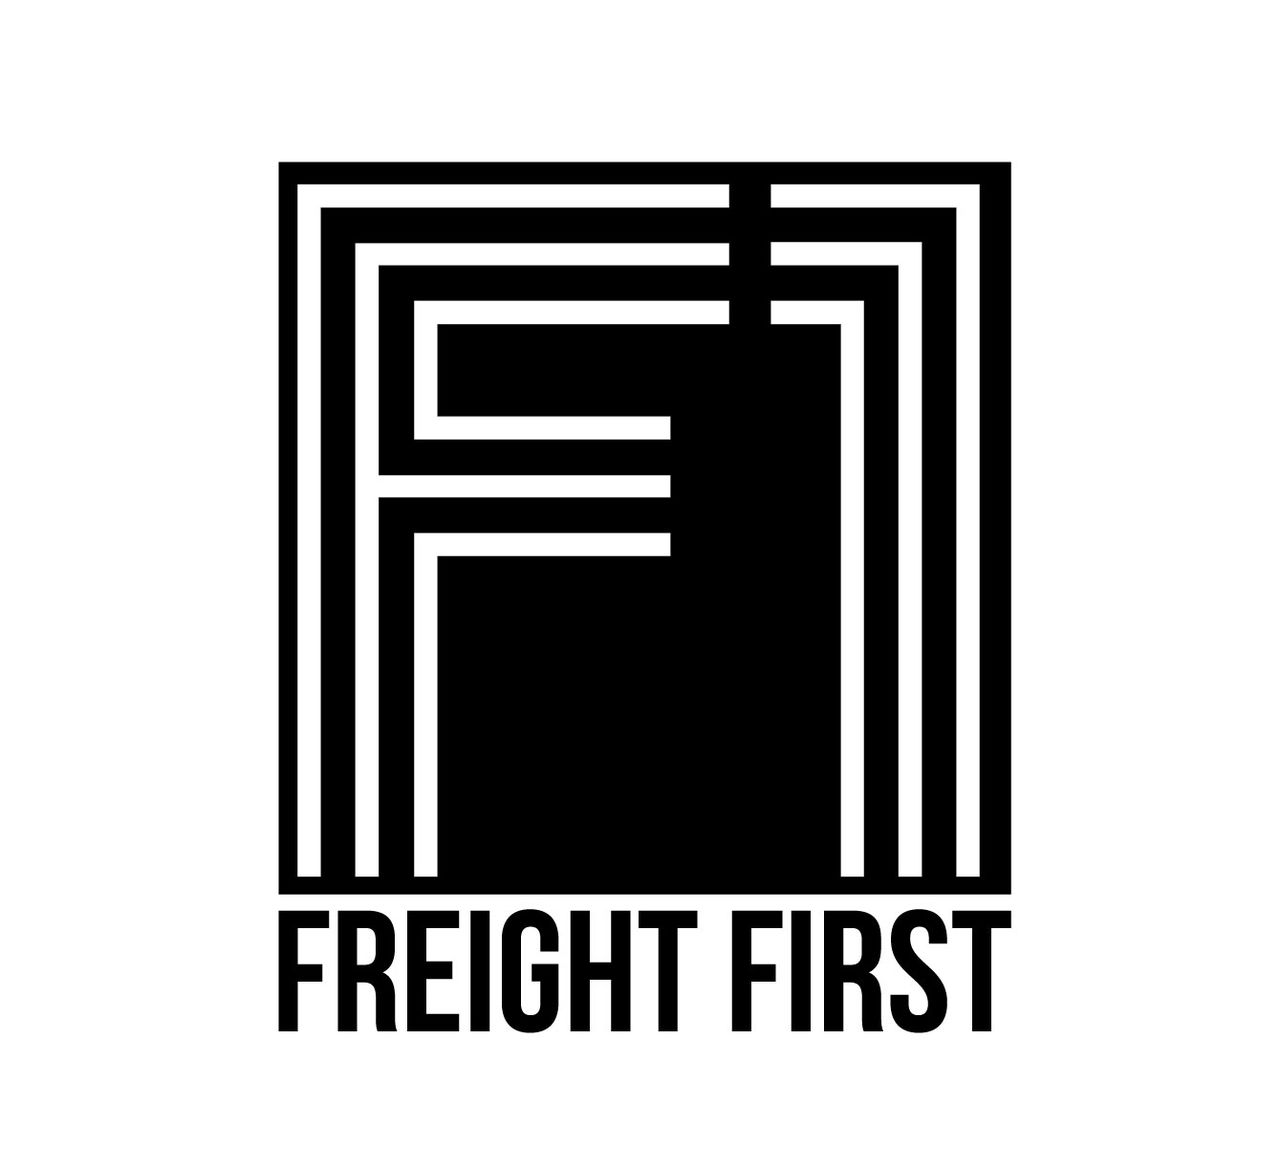 Logo Freight First